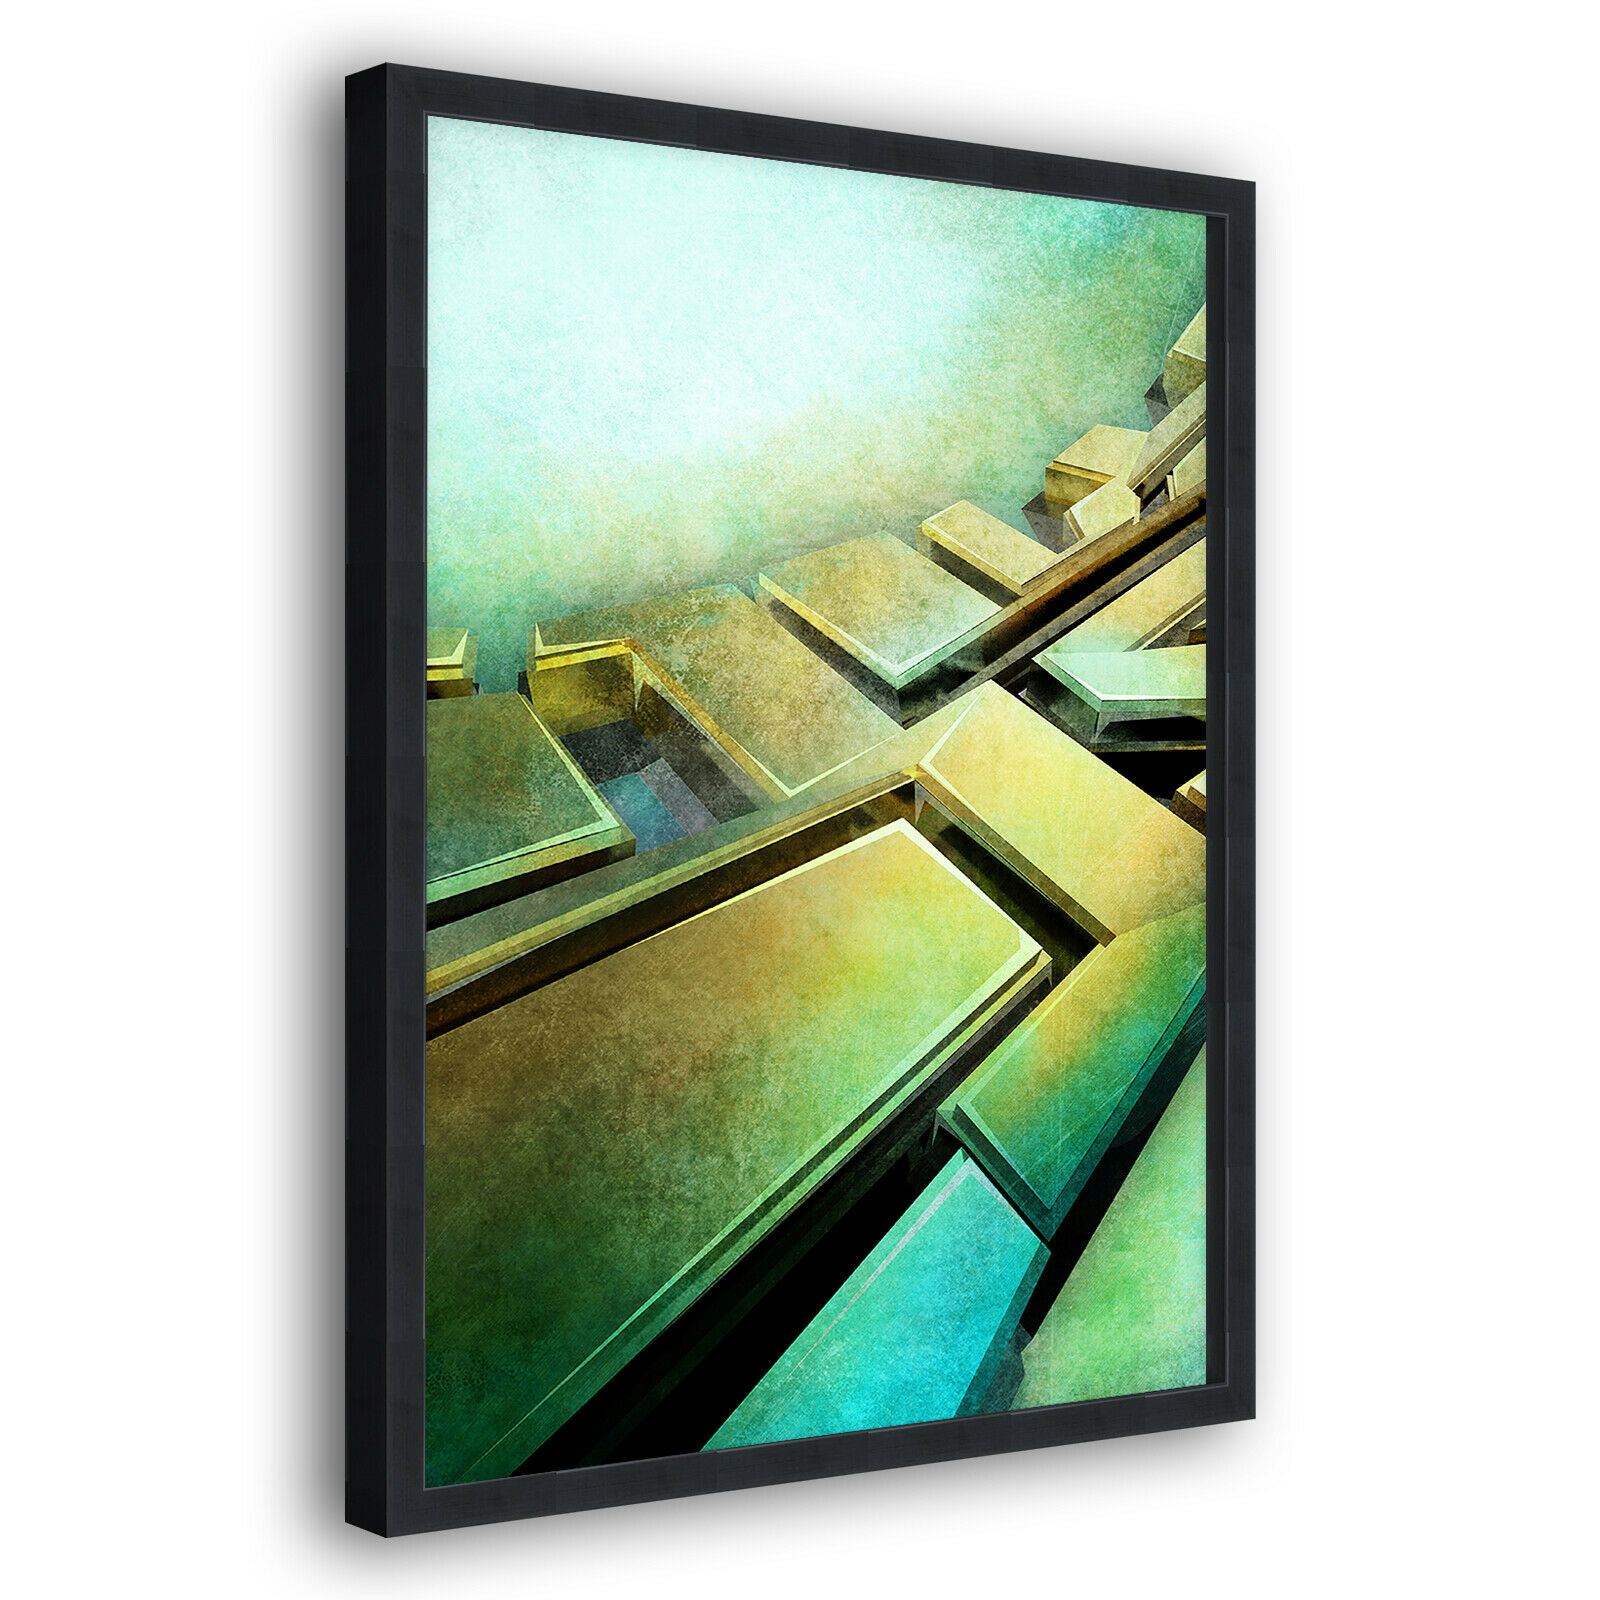 Grün Gelb Grunge Modern Portrait Abstract Framed Wall Art Large Picture Print